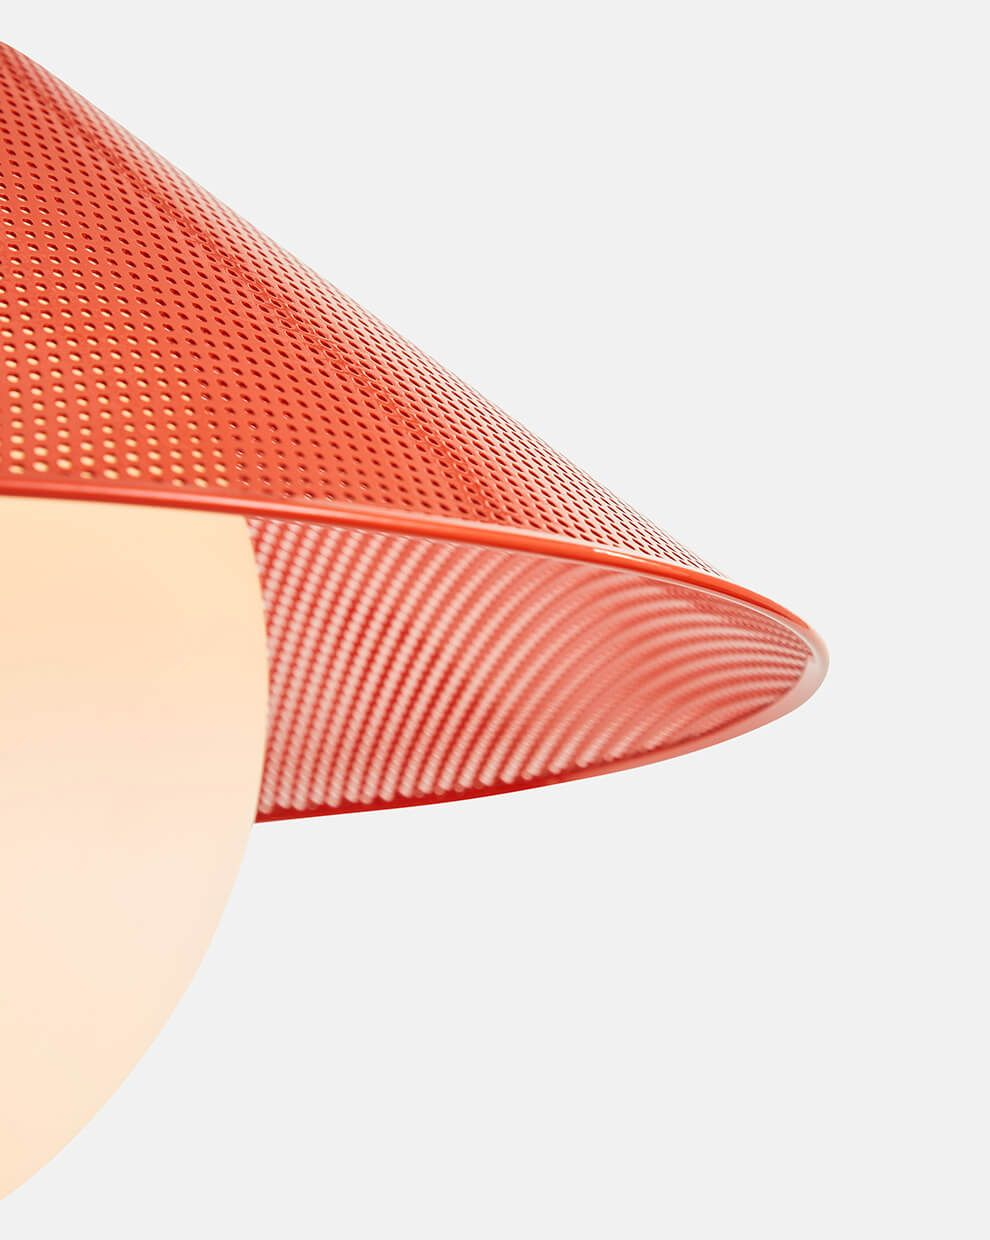 RBW akoya pendant perforated shade detail